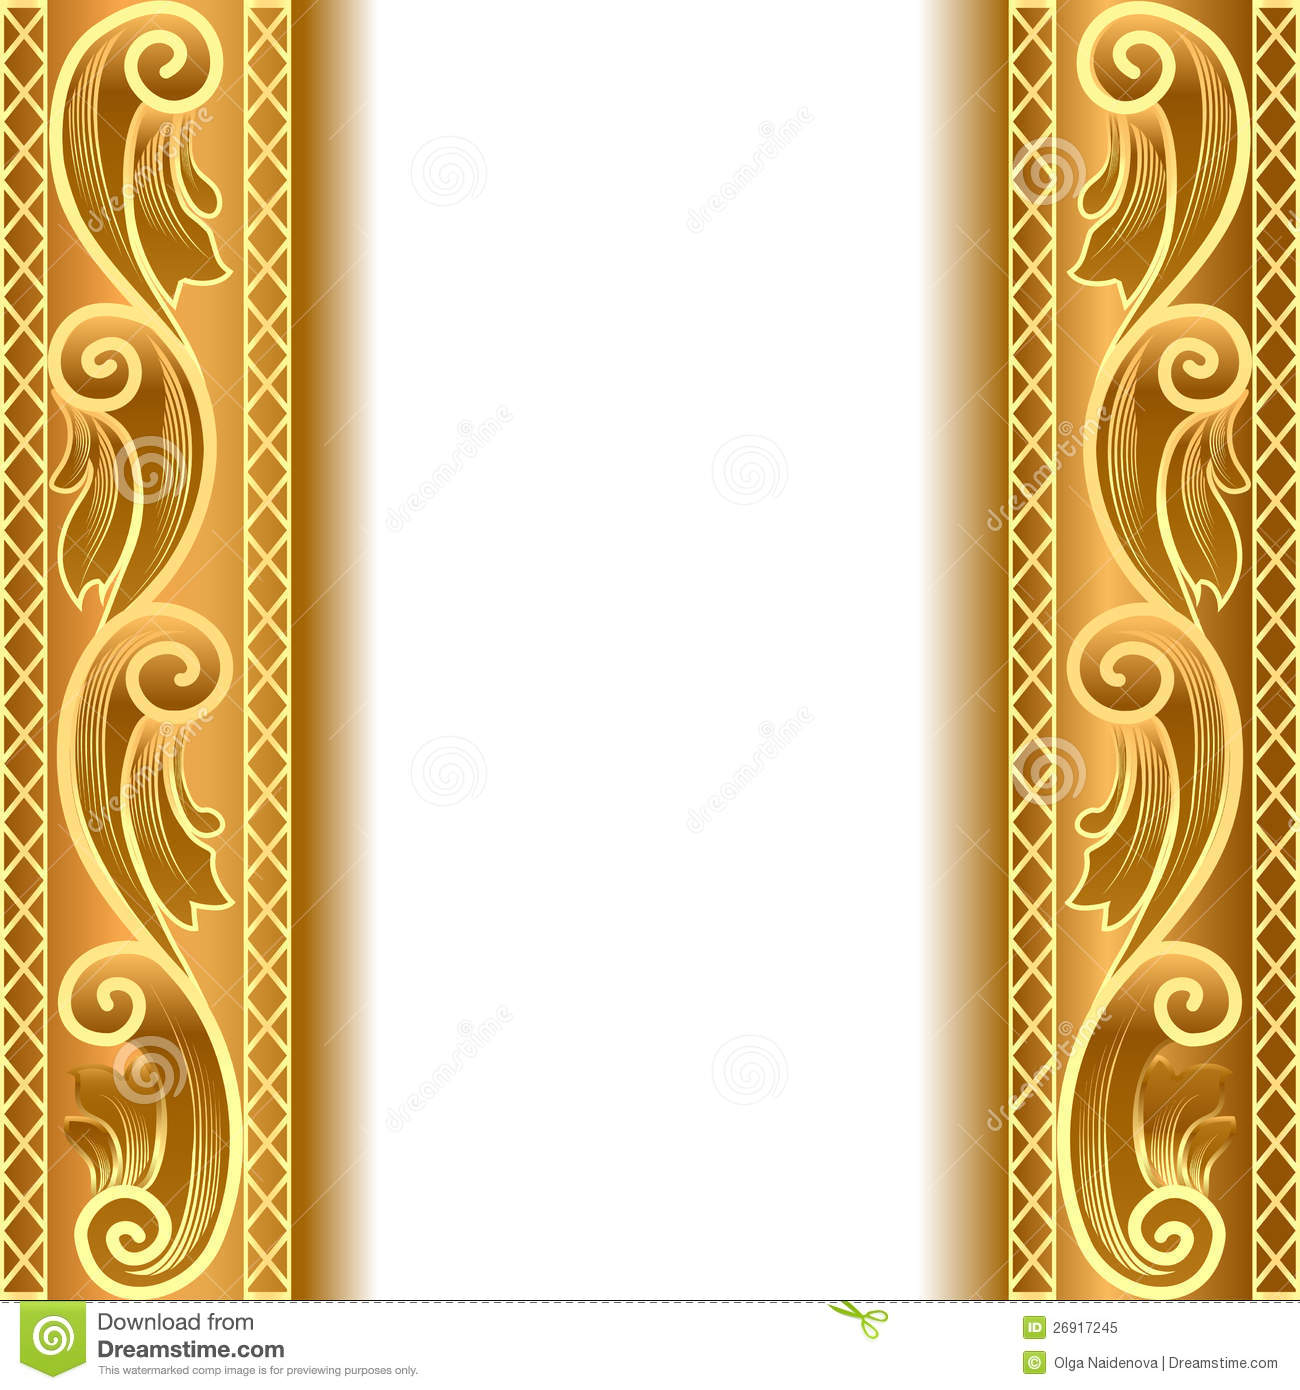 a gold background with a strip with a gold stock illustration image 26917245. Black Bedroom Furniture Sets. Home Design Ideas